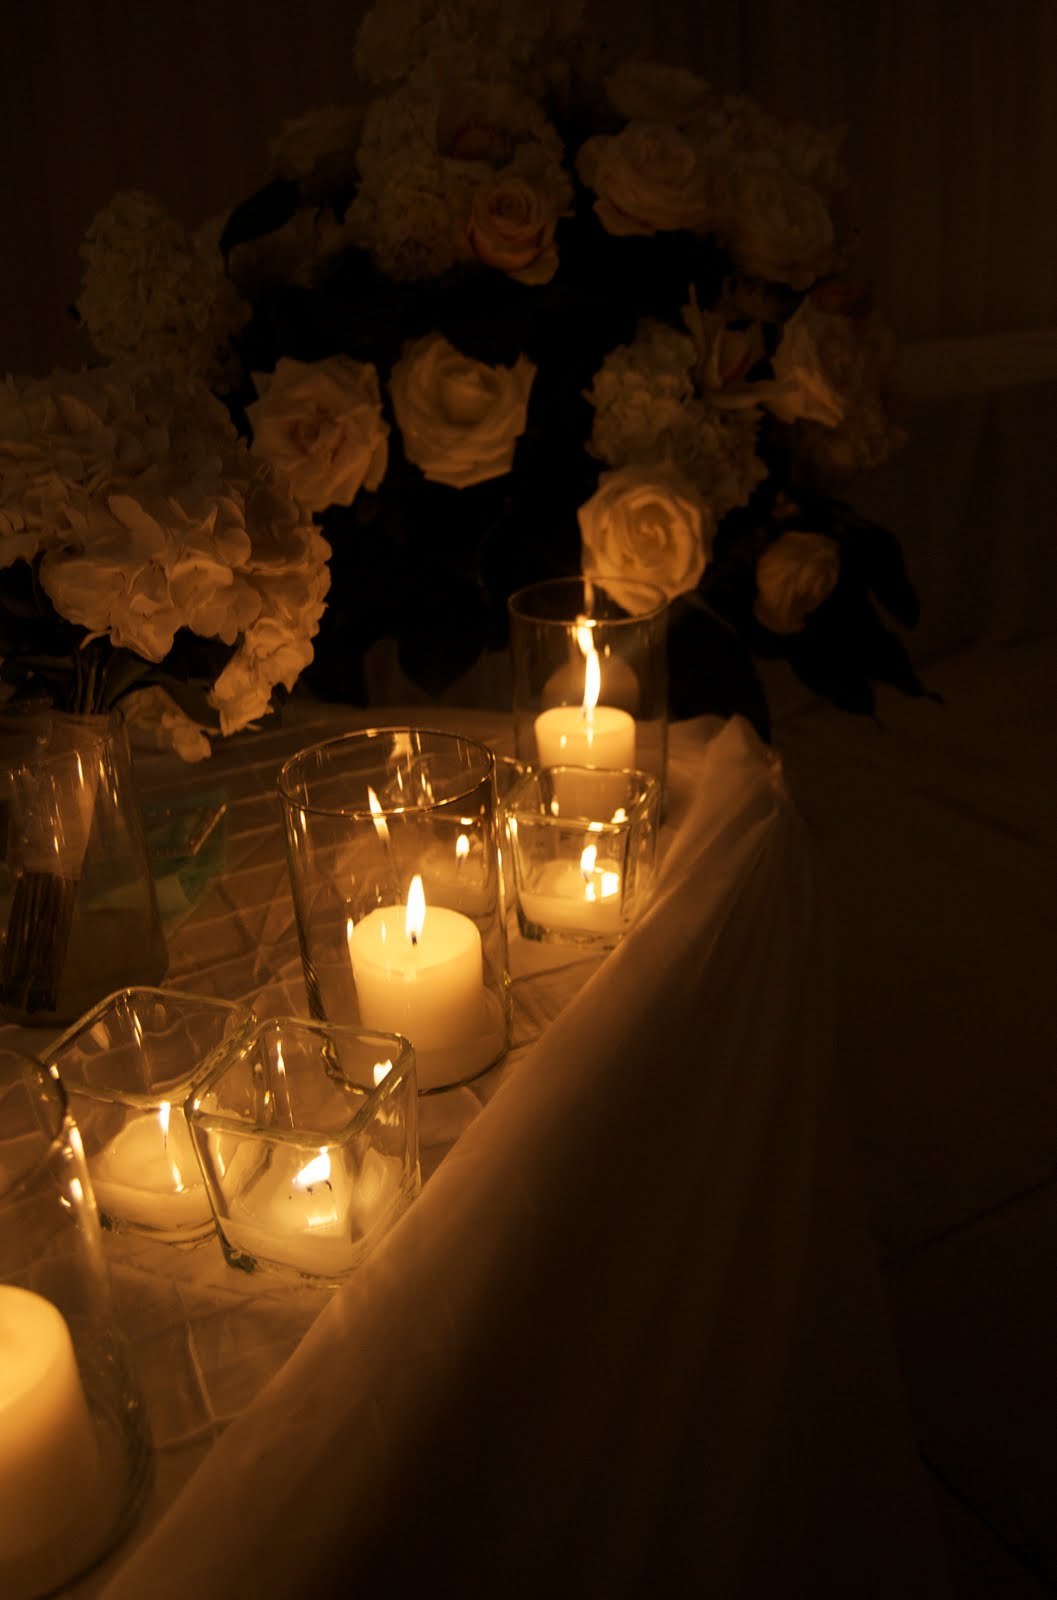 Candle light dating dating in iran